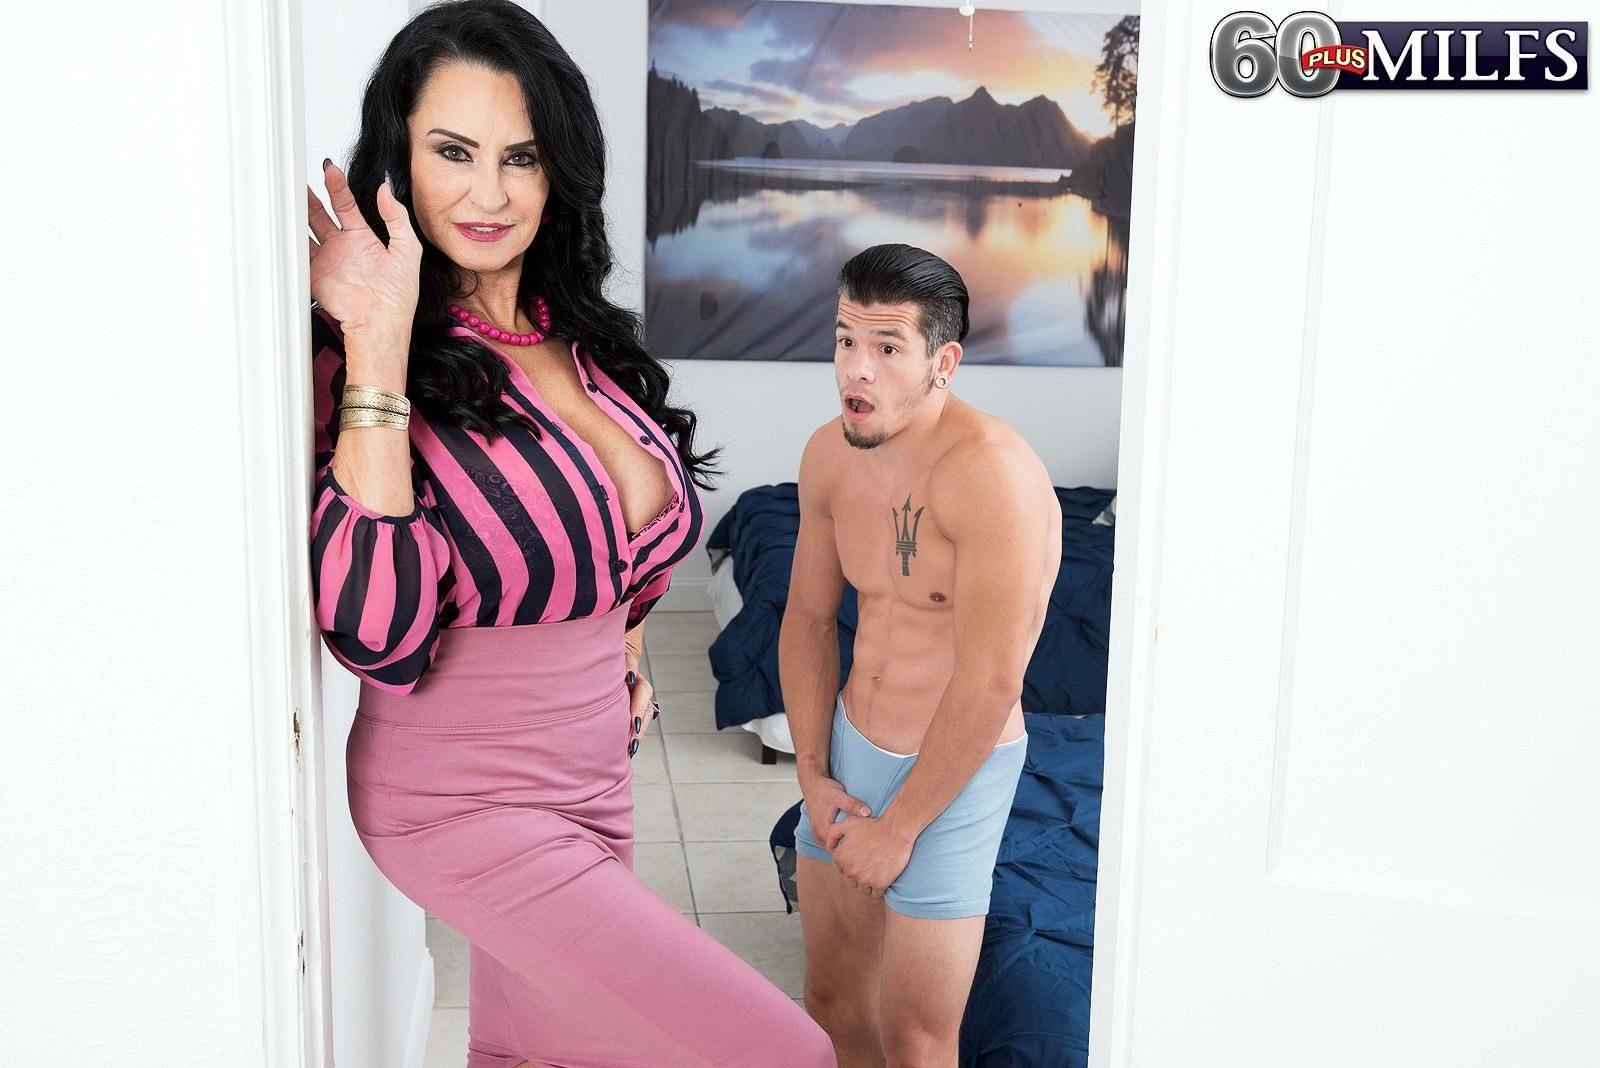 MILF Over 60 Rita Daniels ties up a boy and strips him naked before milking his cock